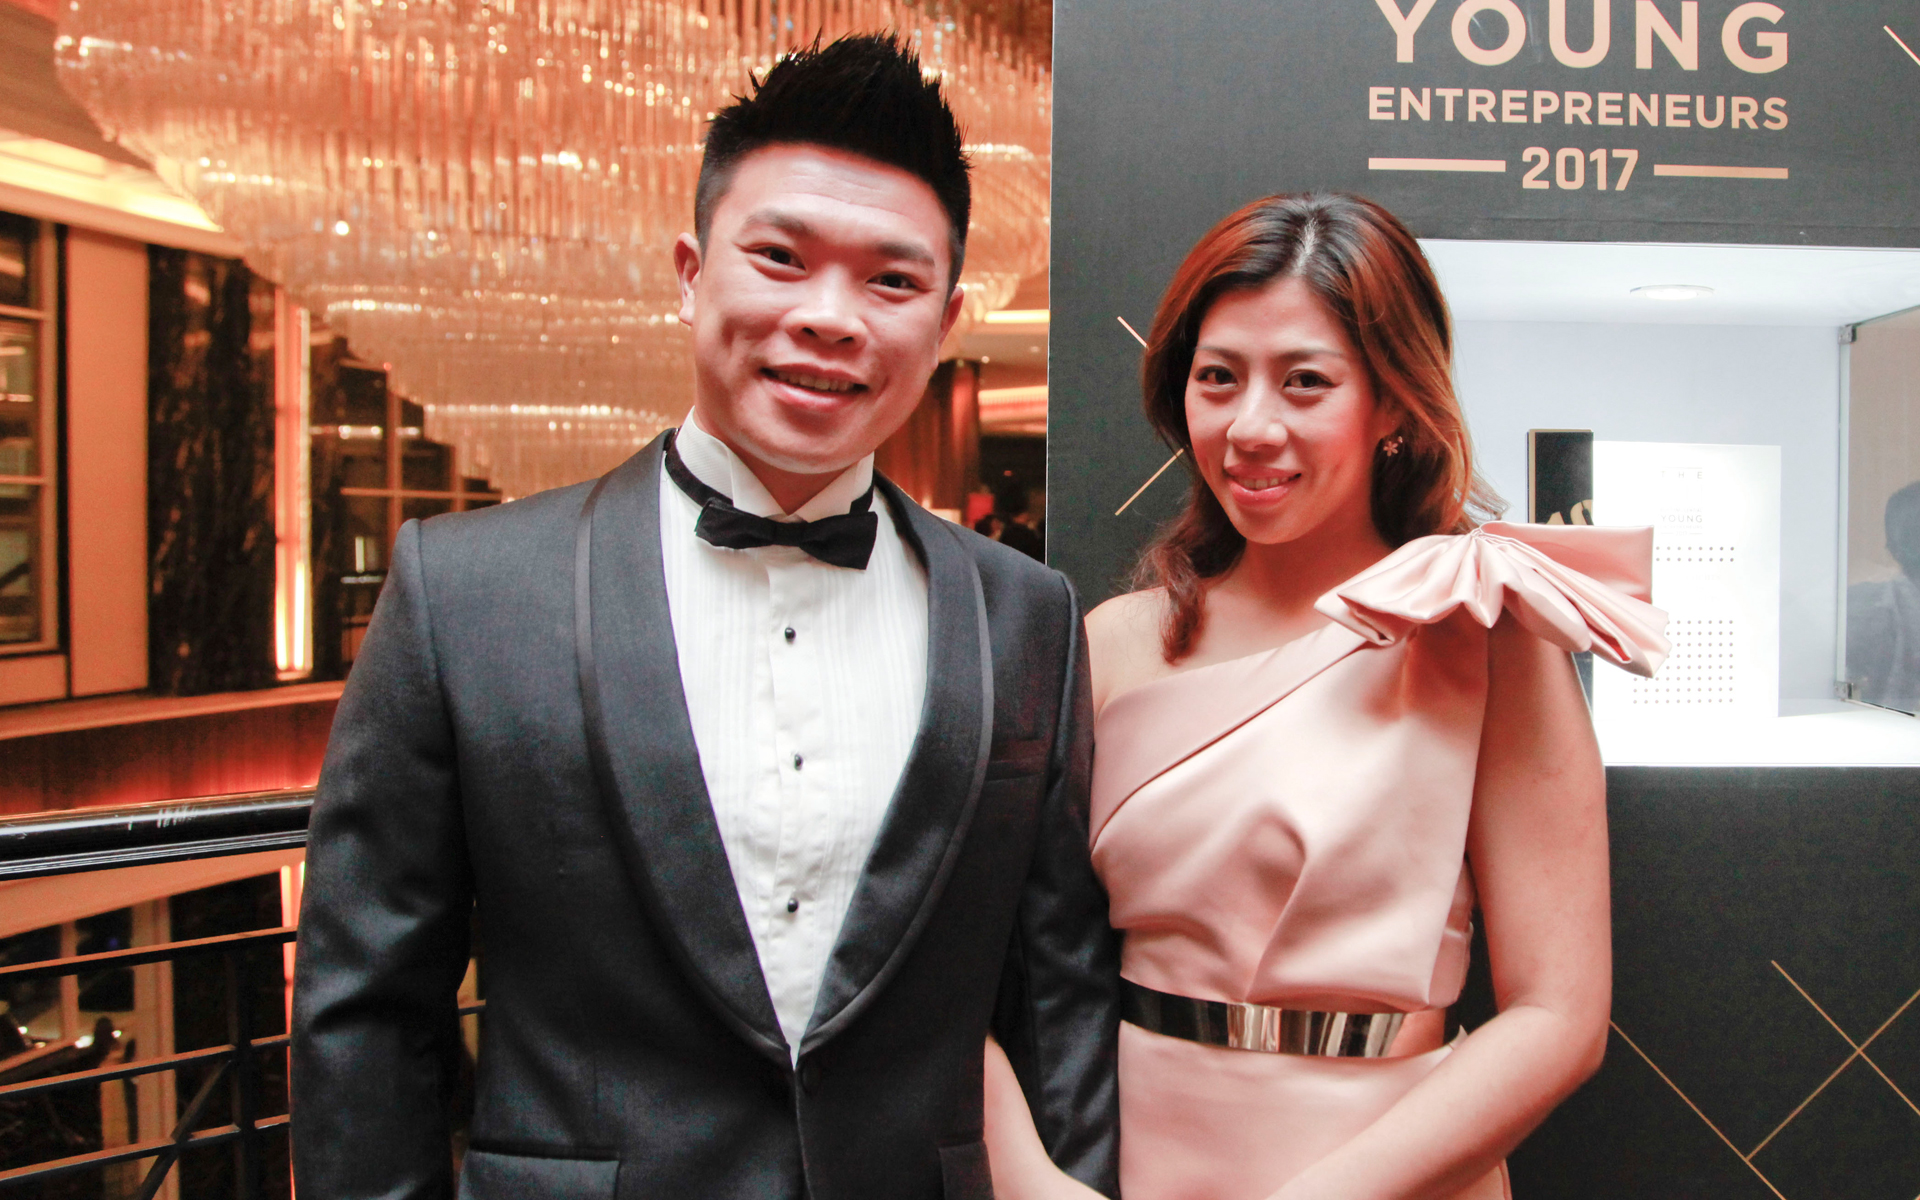 Roy Liew and Janice Chee